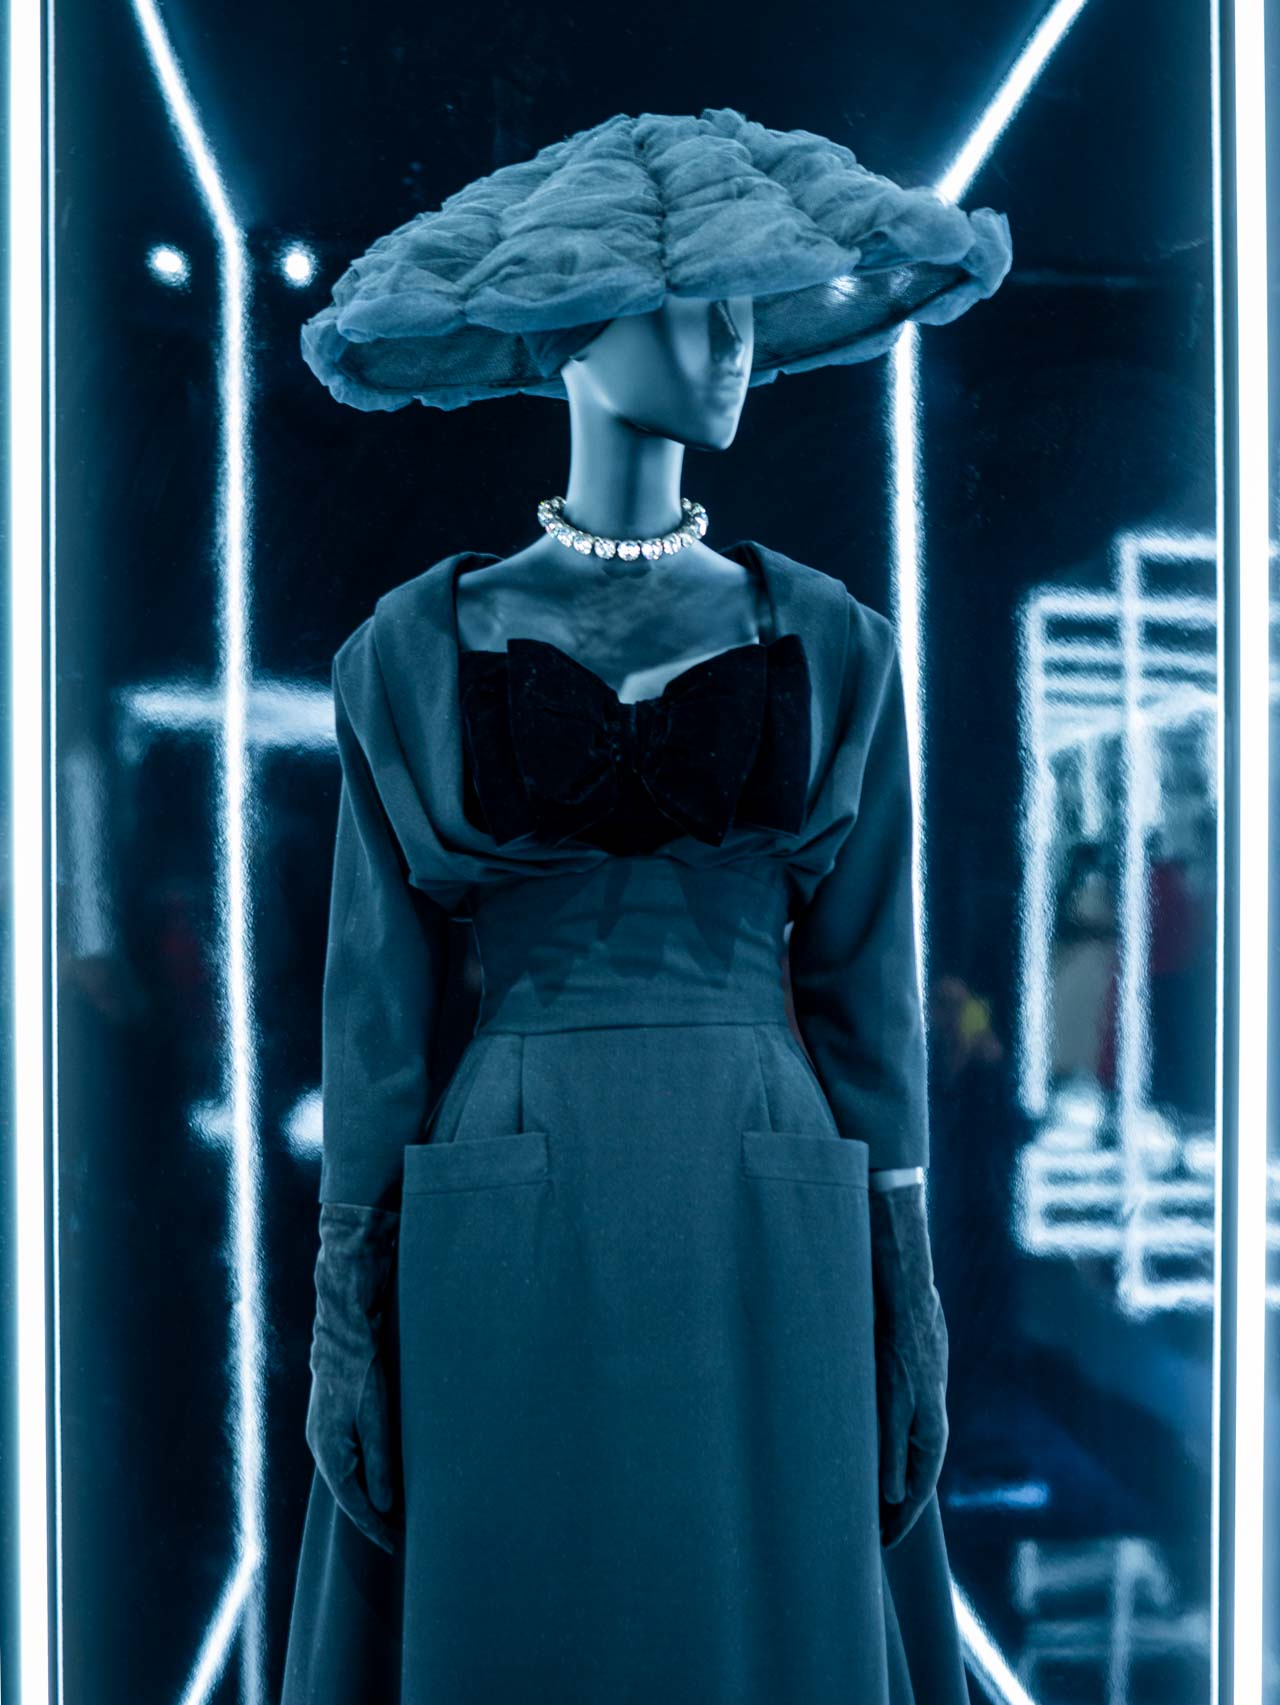 Maxim's ensemble designed by Christian Dior and named after the fashionable Parisian café. Taken at the V&A exhibition © The Cutting Class, 2019.